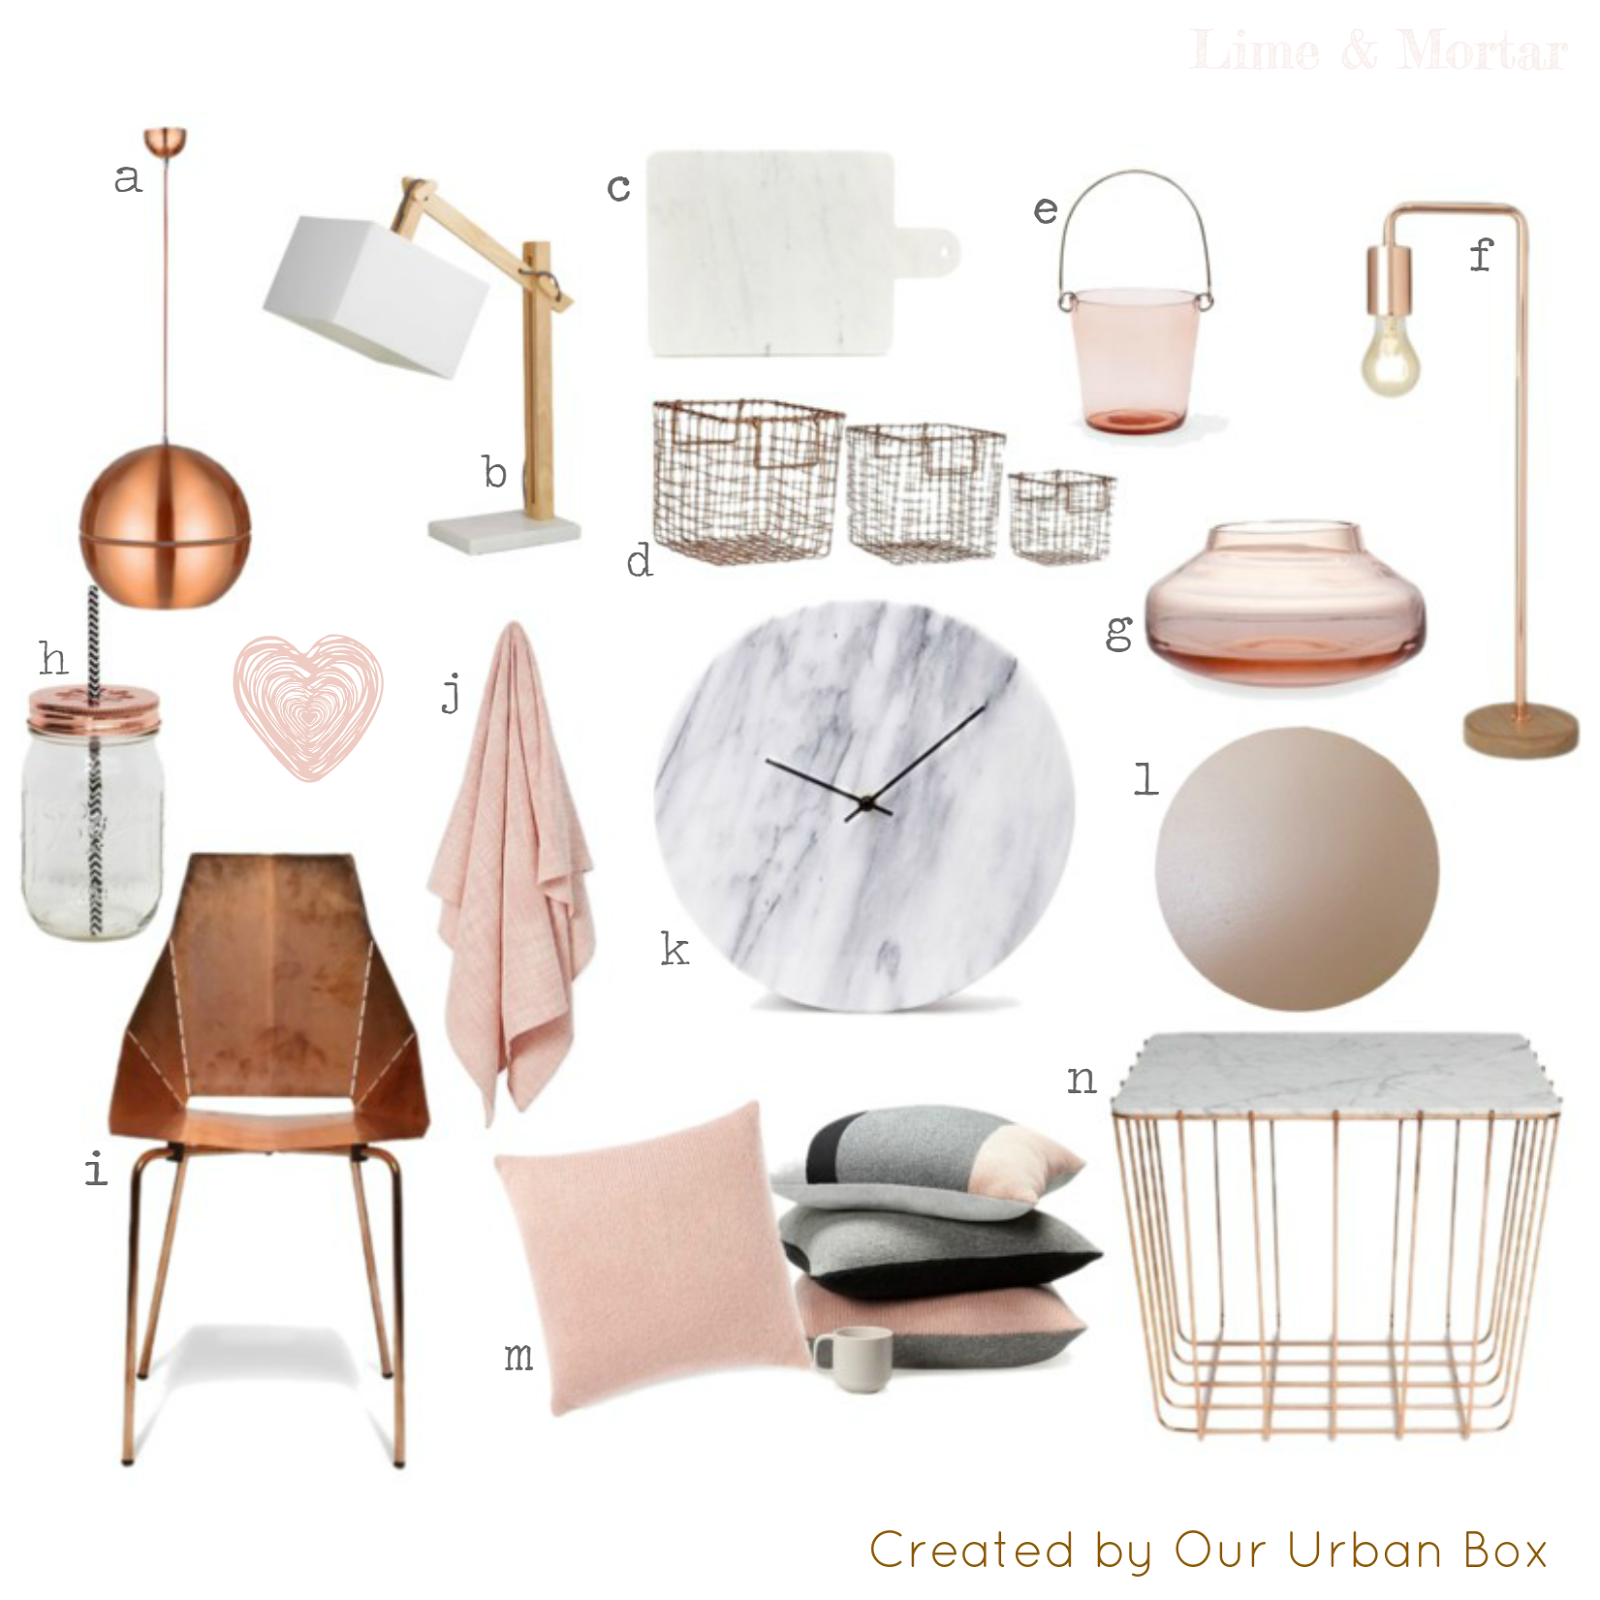 pin by dawn aiello on touch of copper rose in 2019. Black Bedroom Furniture Sets. Home Design Ideas